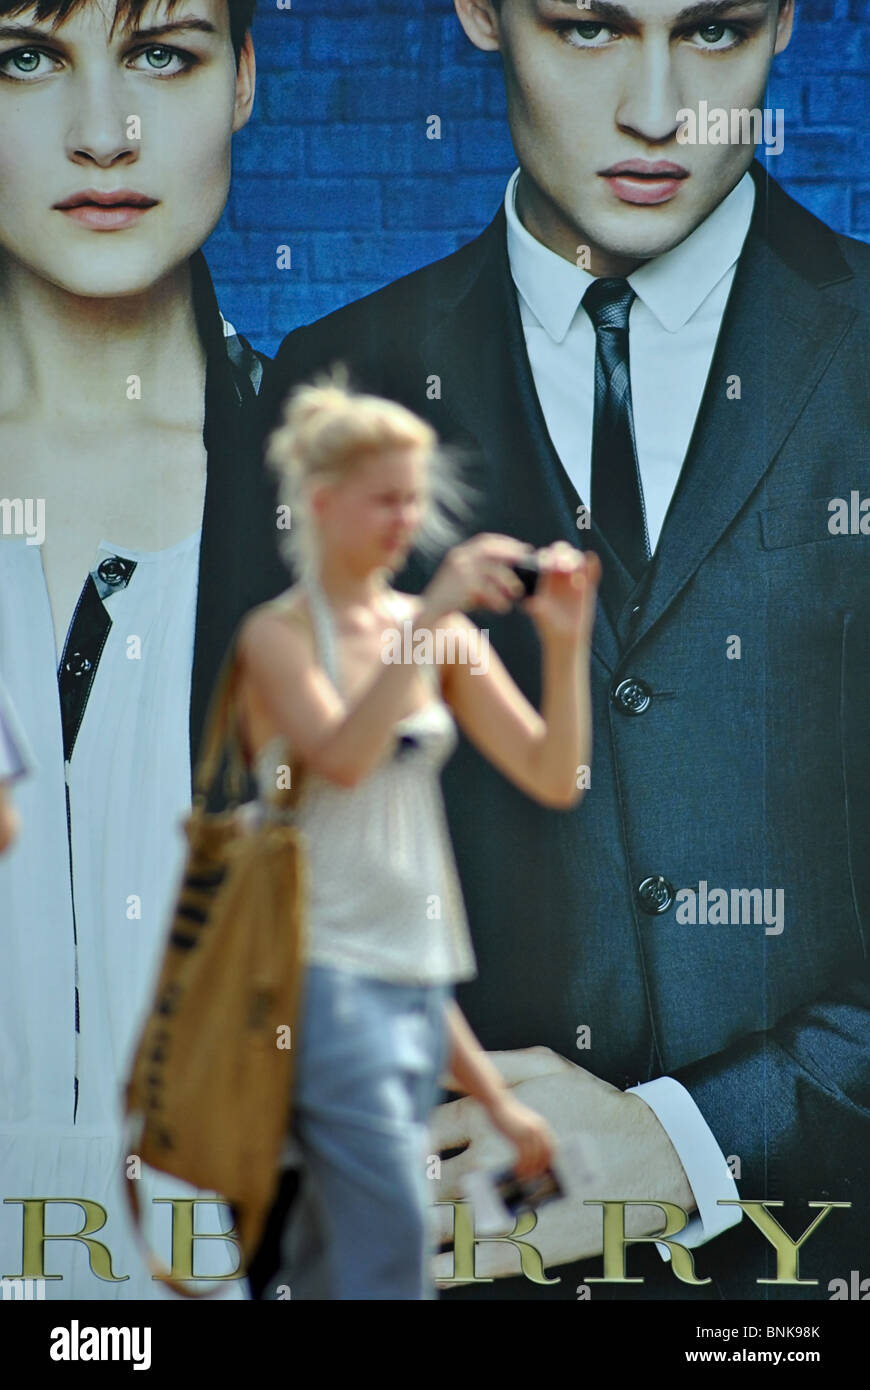 People walk past billboards advertising Burberry clothes, Venice, Italy - Stock Image